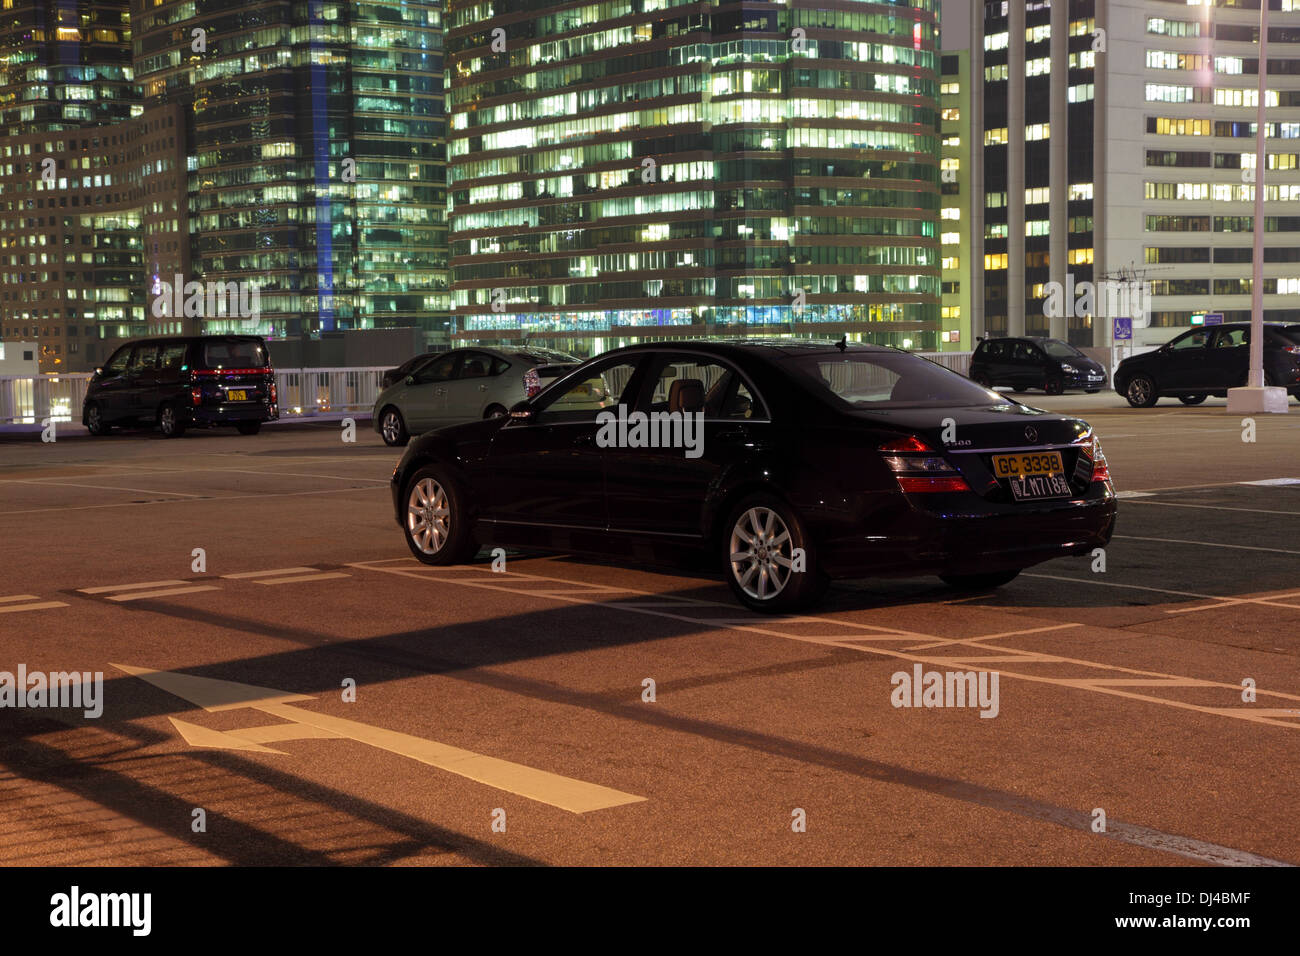 Luxury cars on a parking lot in the city of Hong Kong - Stock Image